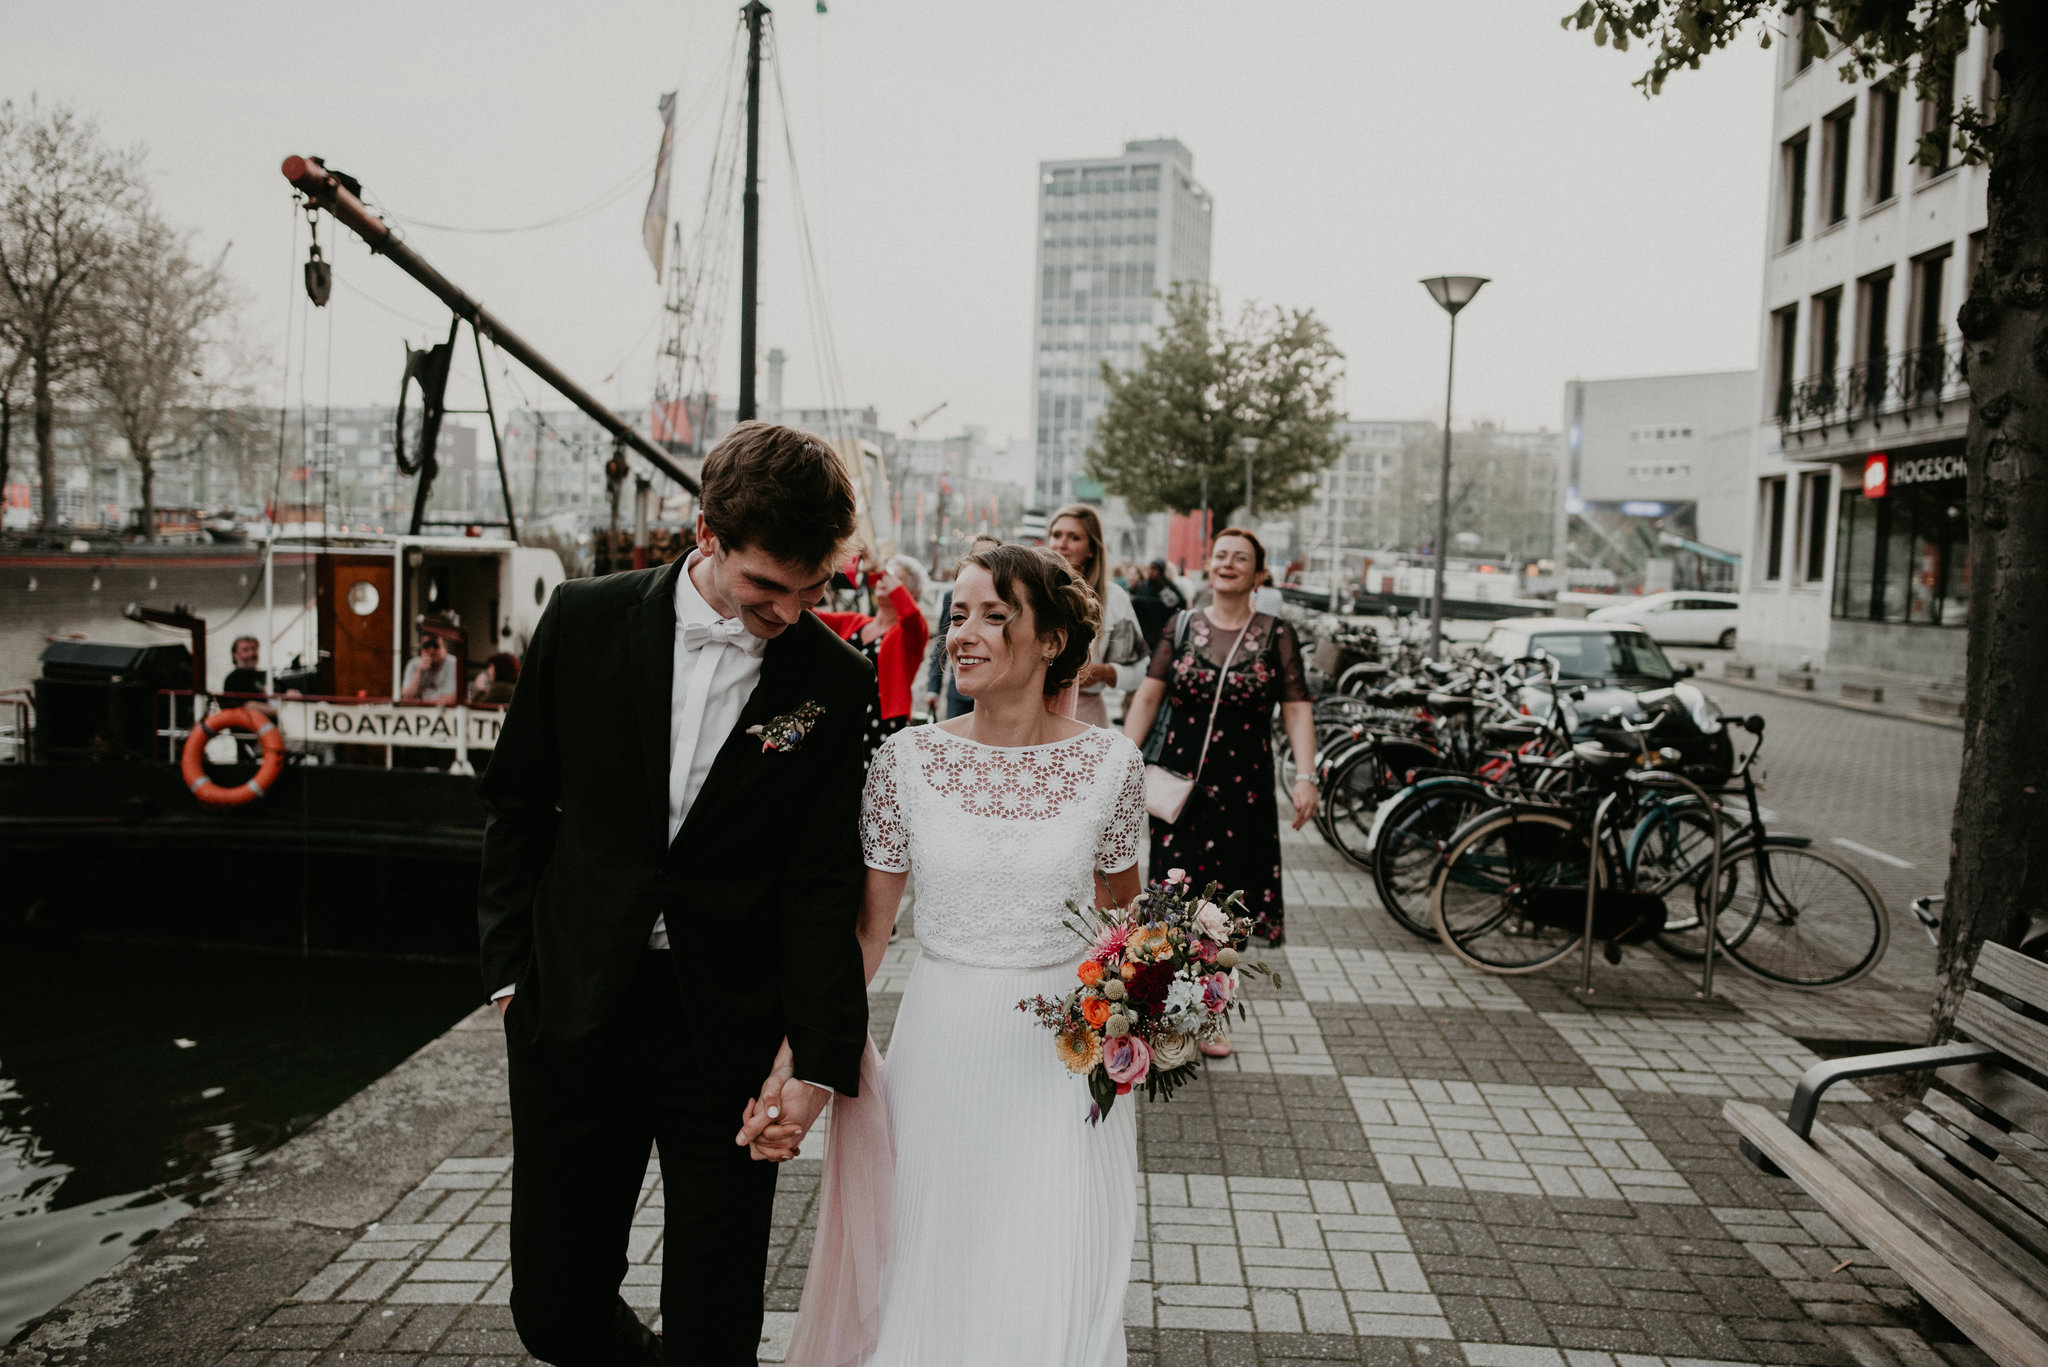 Bride and groom walking together in Rotterdam Oude Haven to Vessel 11